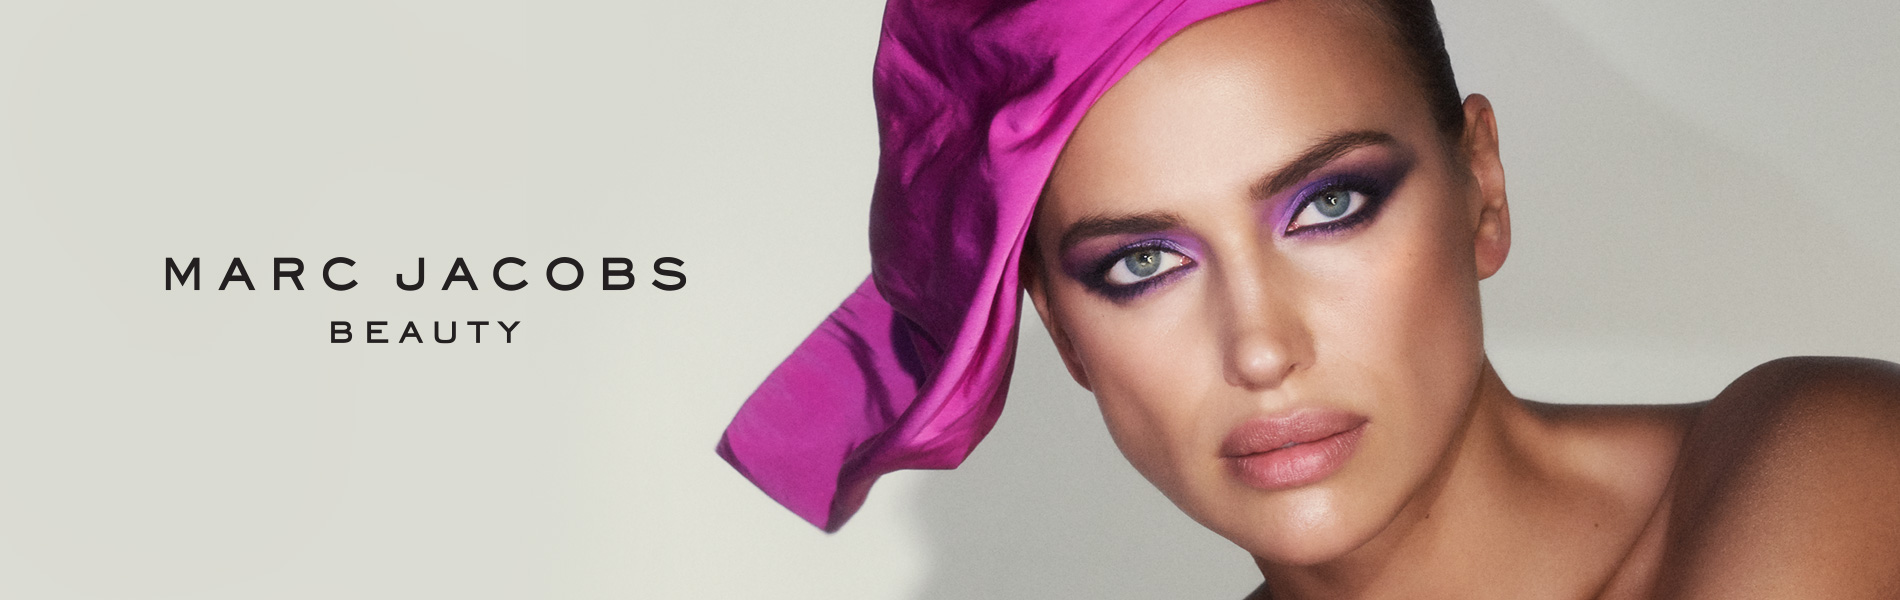 Banner image of marc jacobs beauty 2019 campaign